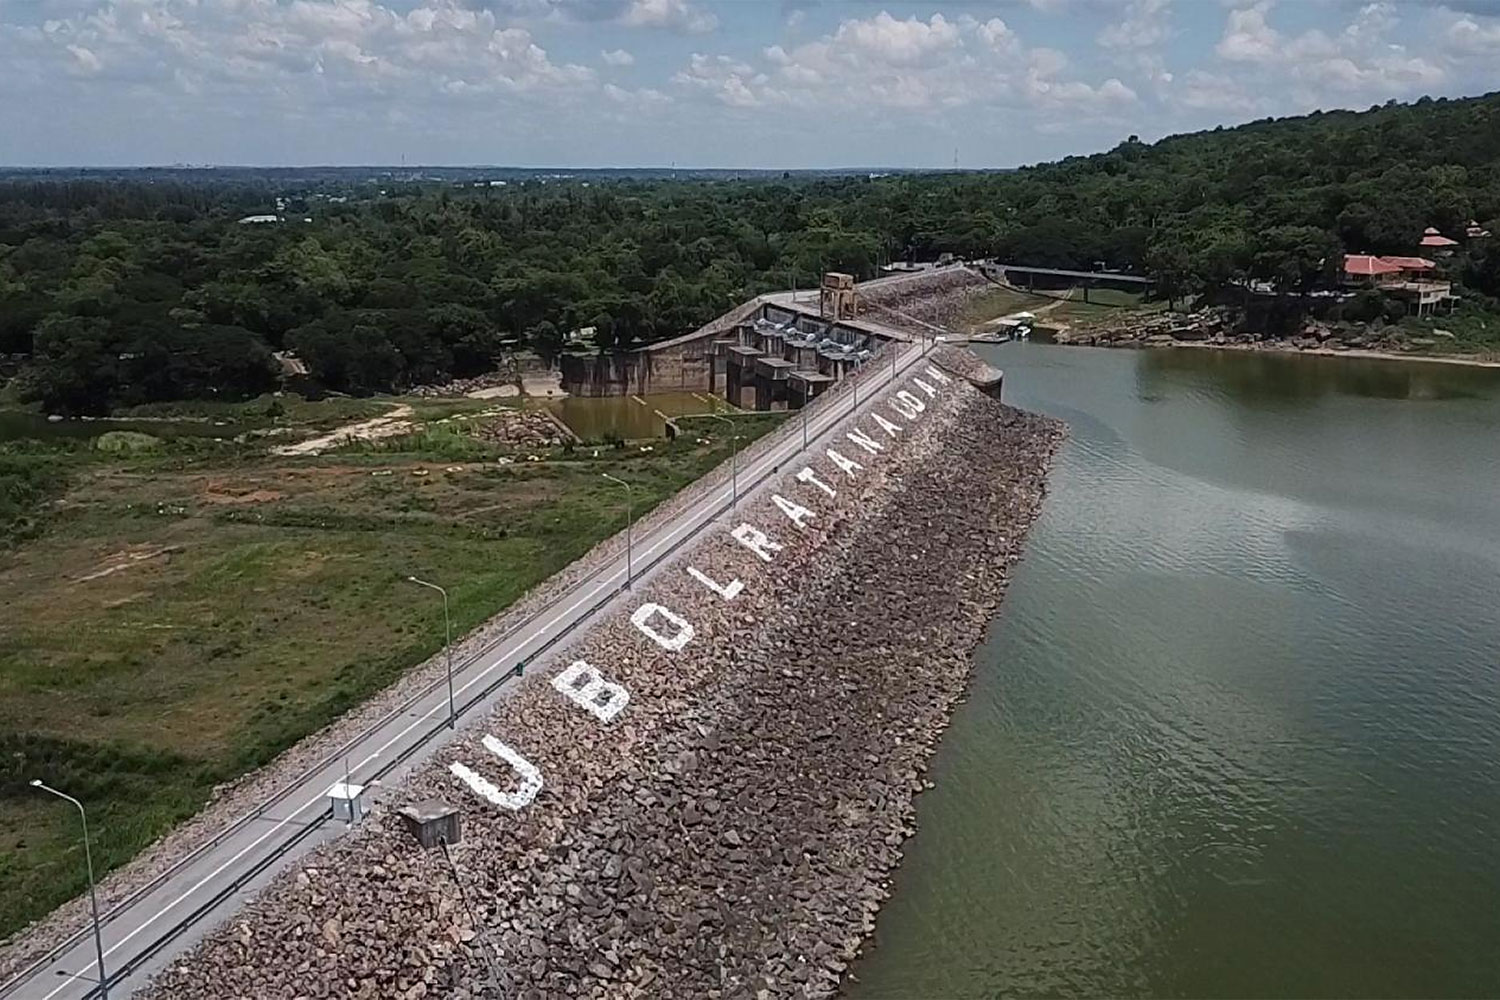 Ubol Ratana dam in Khon Kaen is one of nine dams that generates electricity under Egat's management. This dam will be the second site for a hydro-floating solar hybrid power project. (Photo by Chakkrapan Natanri)